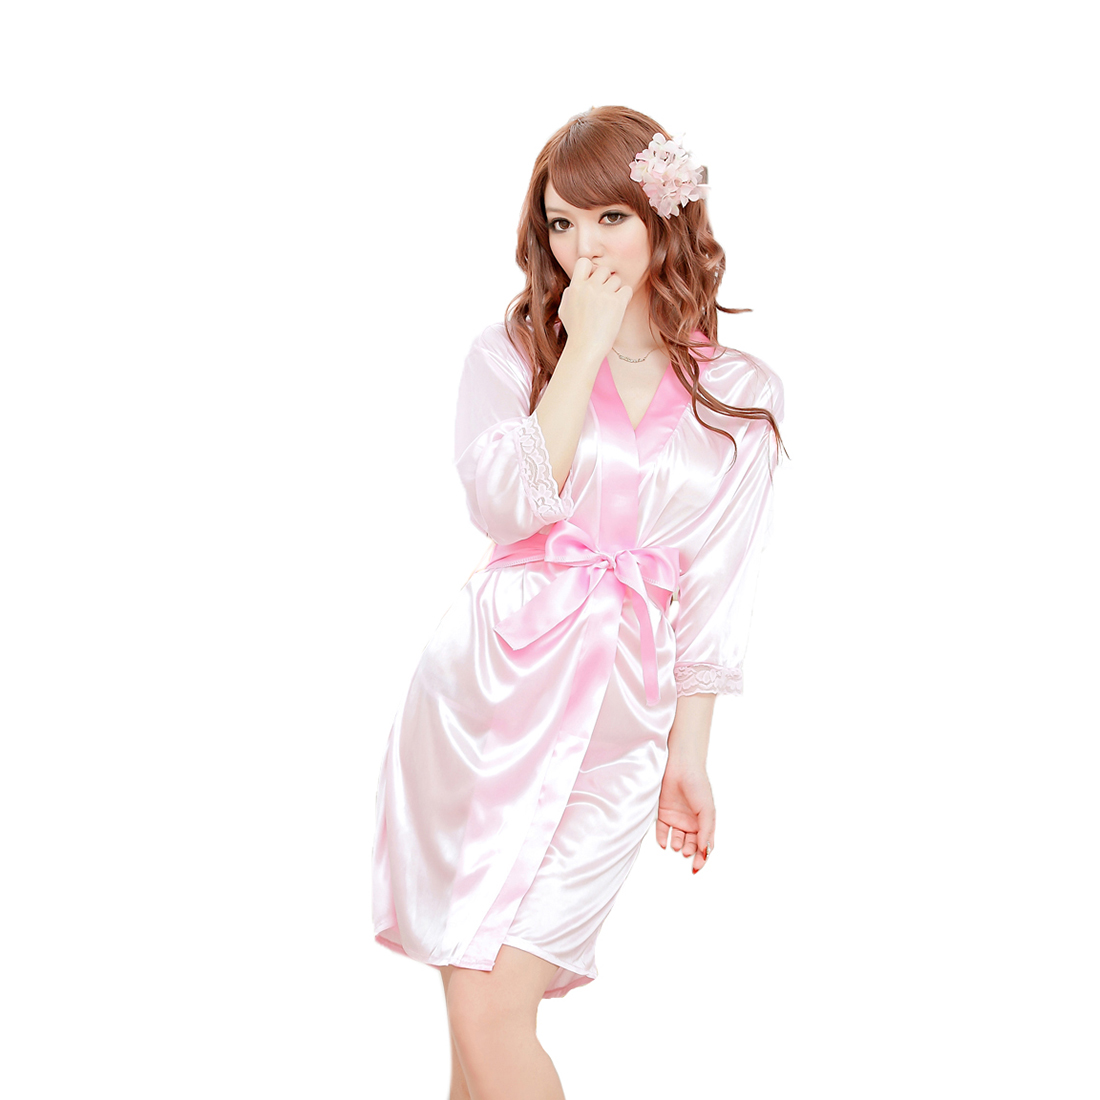 """Girl's Sleepwear As the """"slumber party phase"""" kicks into gear, you're going to need plenty of bright and colourful girl's sleepwear on hand. We've got you covered thanks to our long sleeve sleep sets, short sleeve sleep sets, girl's nighties and snuggly gowns."""